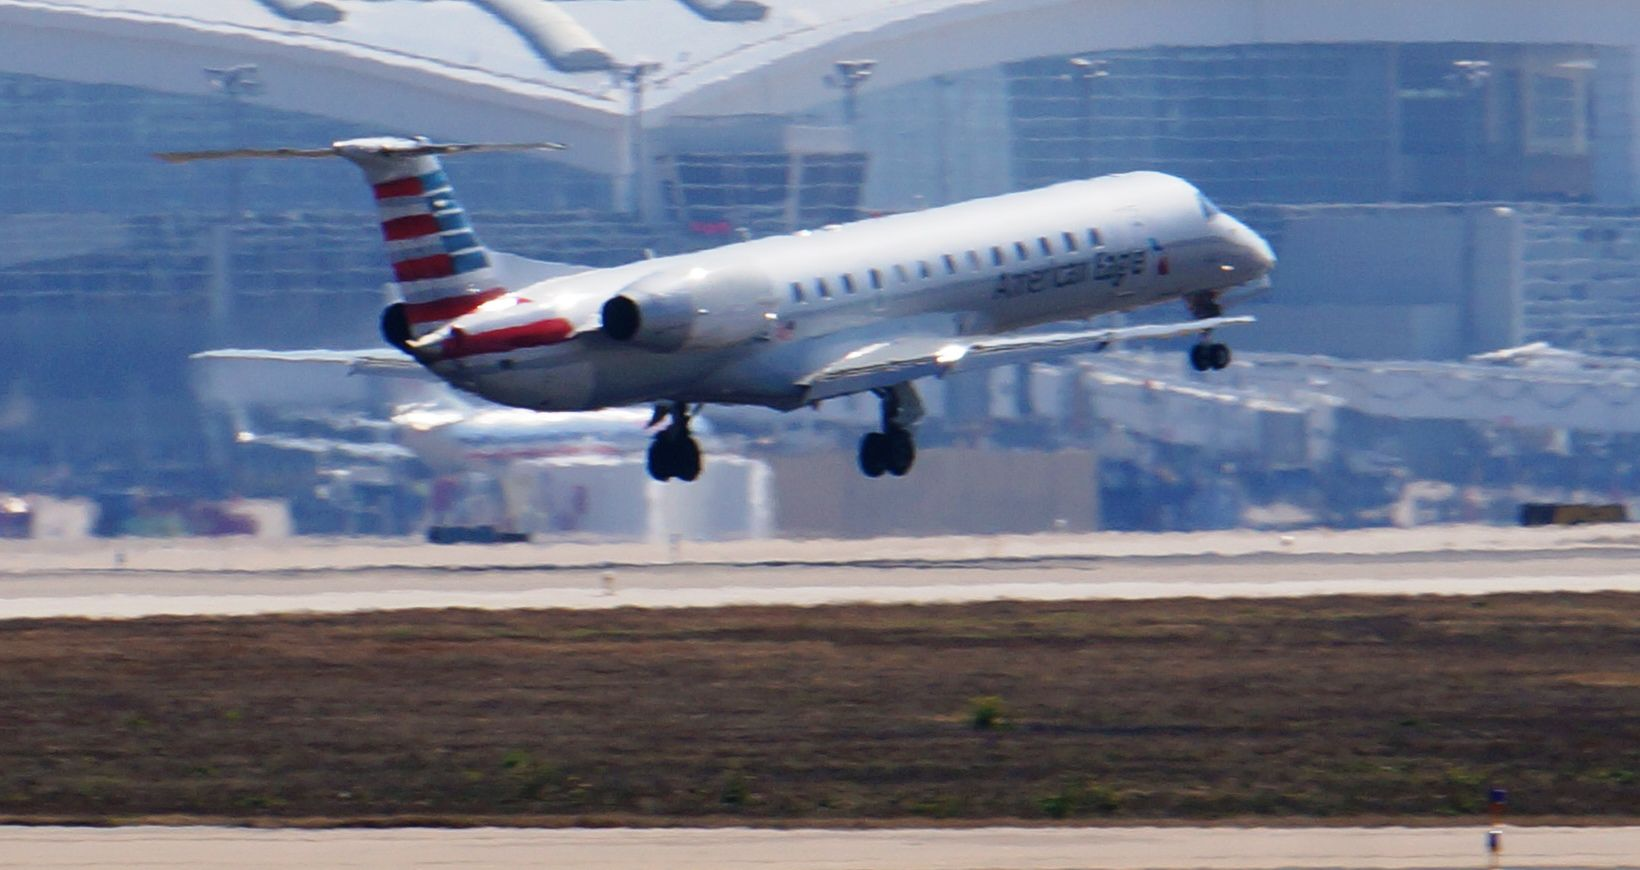 American Airlines intends to transfer Embraer EMB-145 jets like this one to another carrier and end Envoy Air's New York operations. This photo was taken at Dallas/Fort Worth International Airport. (Terry Maxon/DMN)